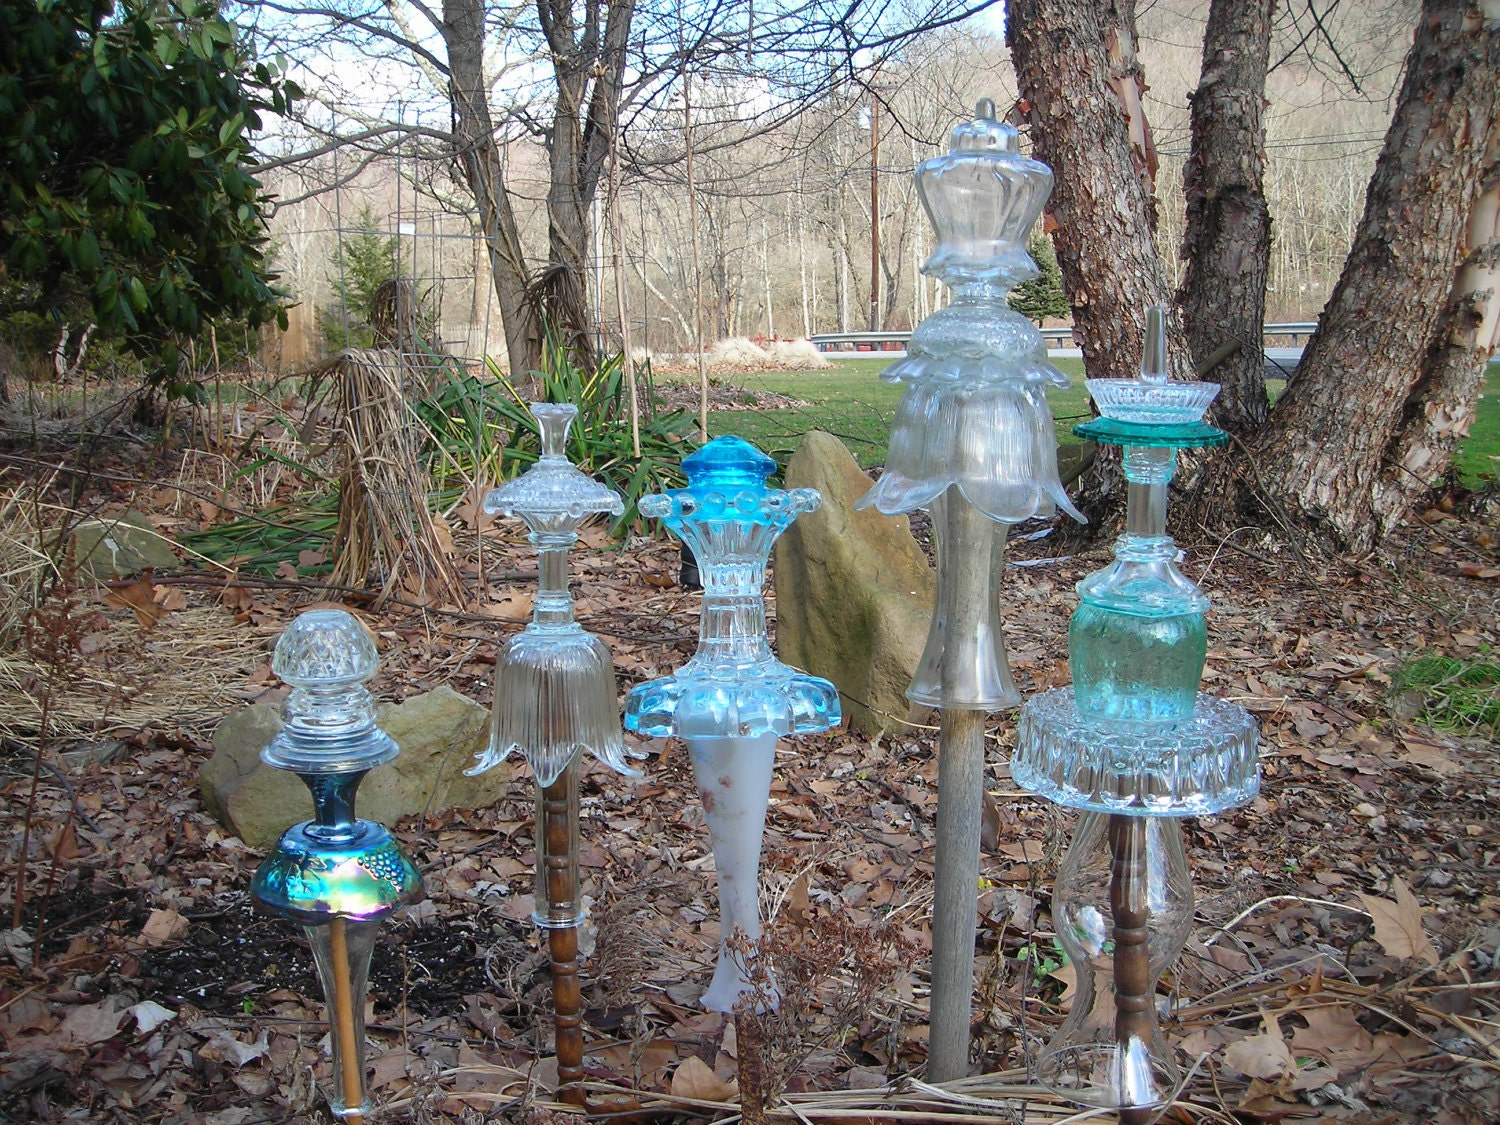 Glass garden art yard art garden ideas pinterest for Yard art ideas